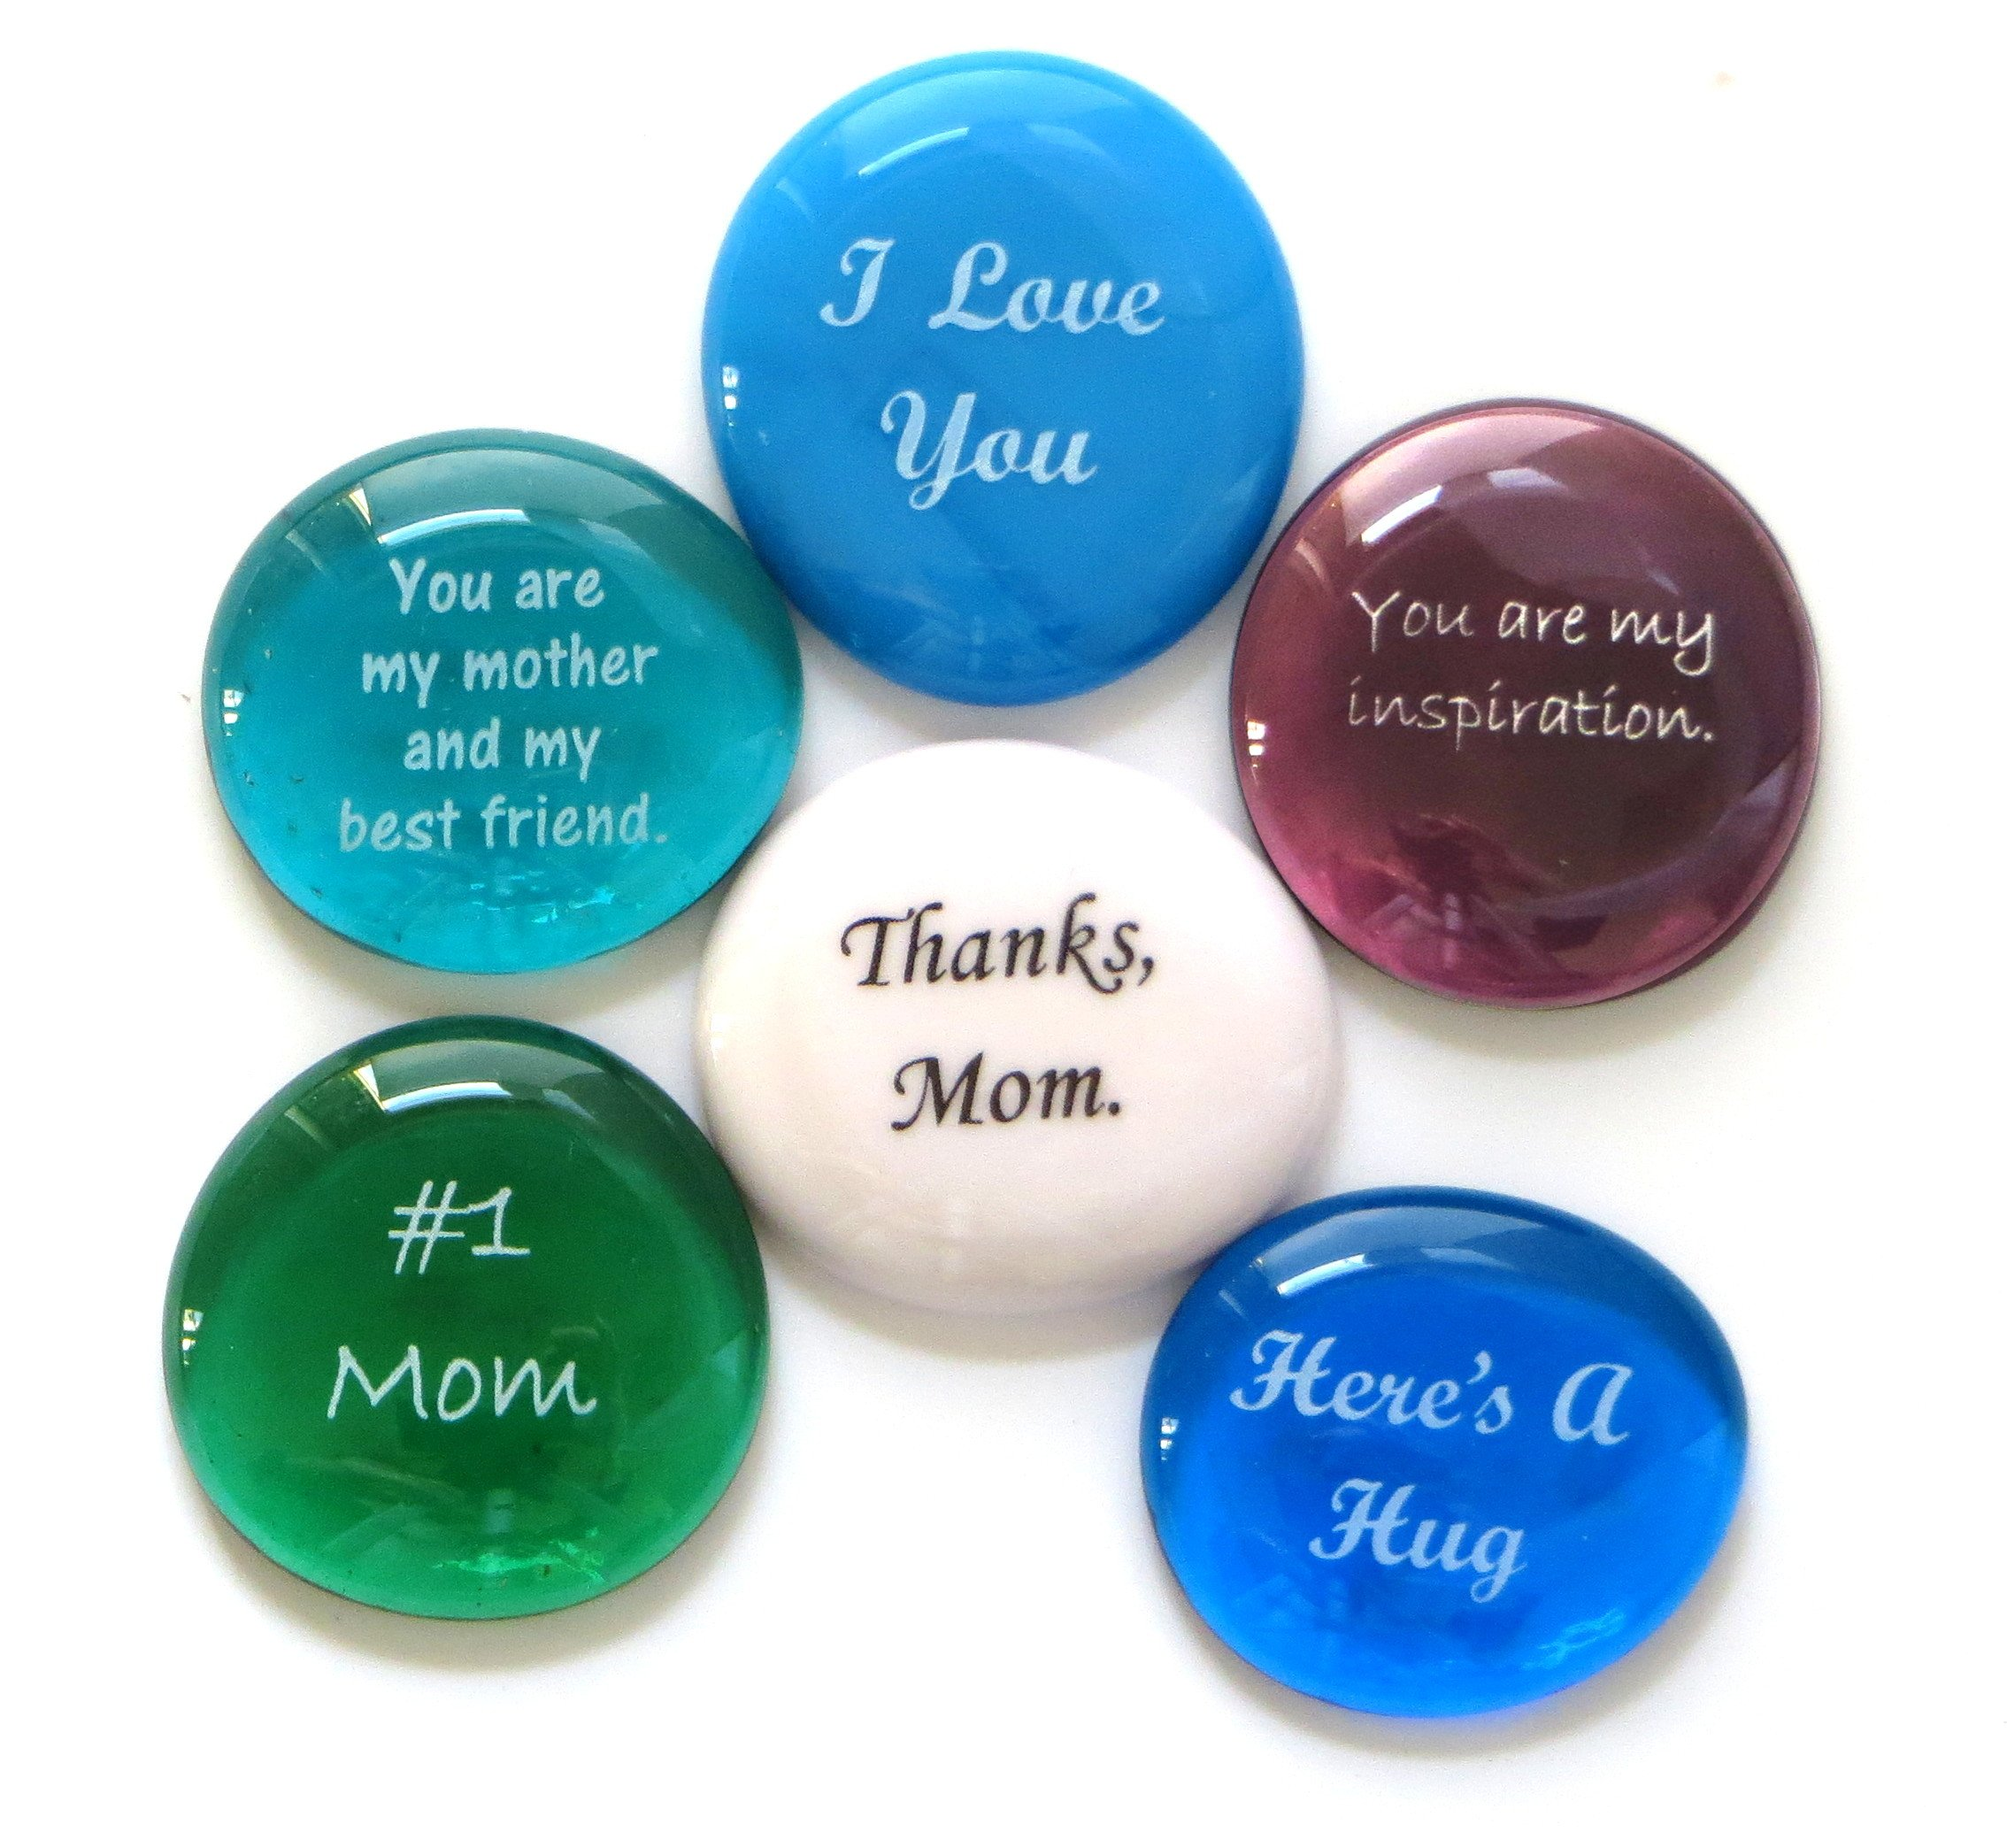 Glass Stones for Mom, Tell Your Mother How Much You Love Her Six Times With This Thoughtful Gift. By Lifeforce Glass.